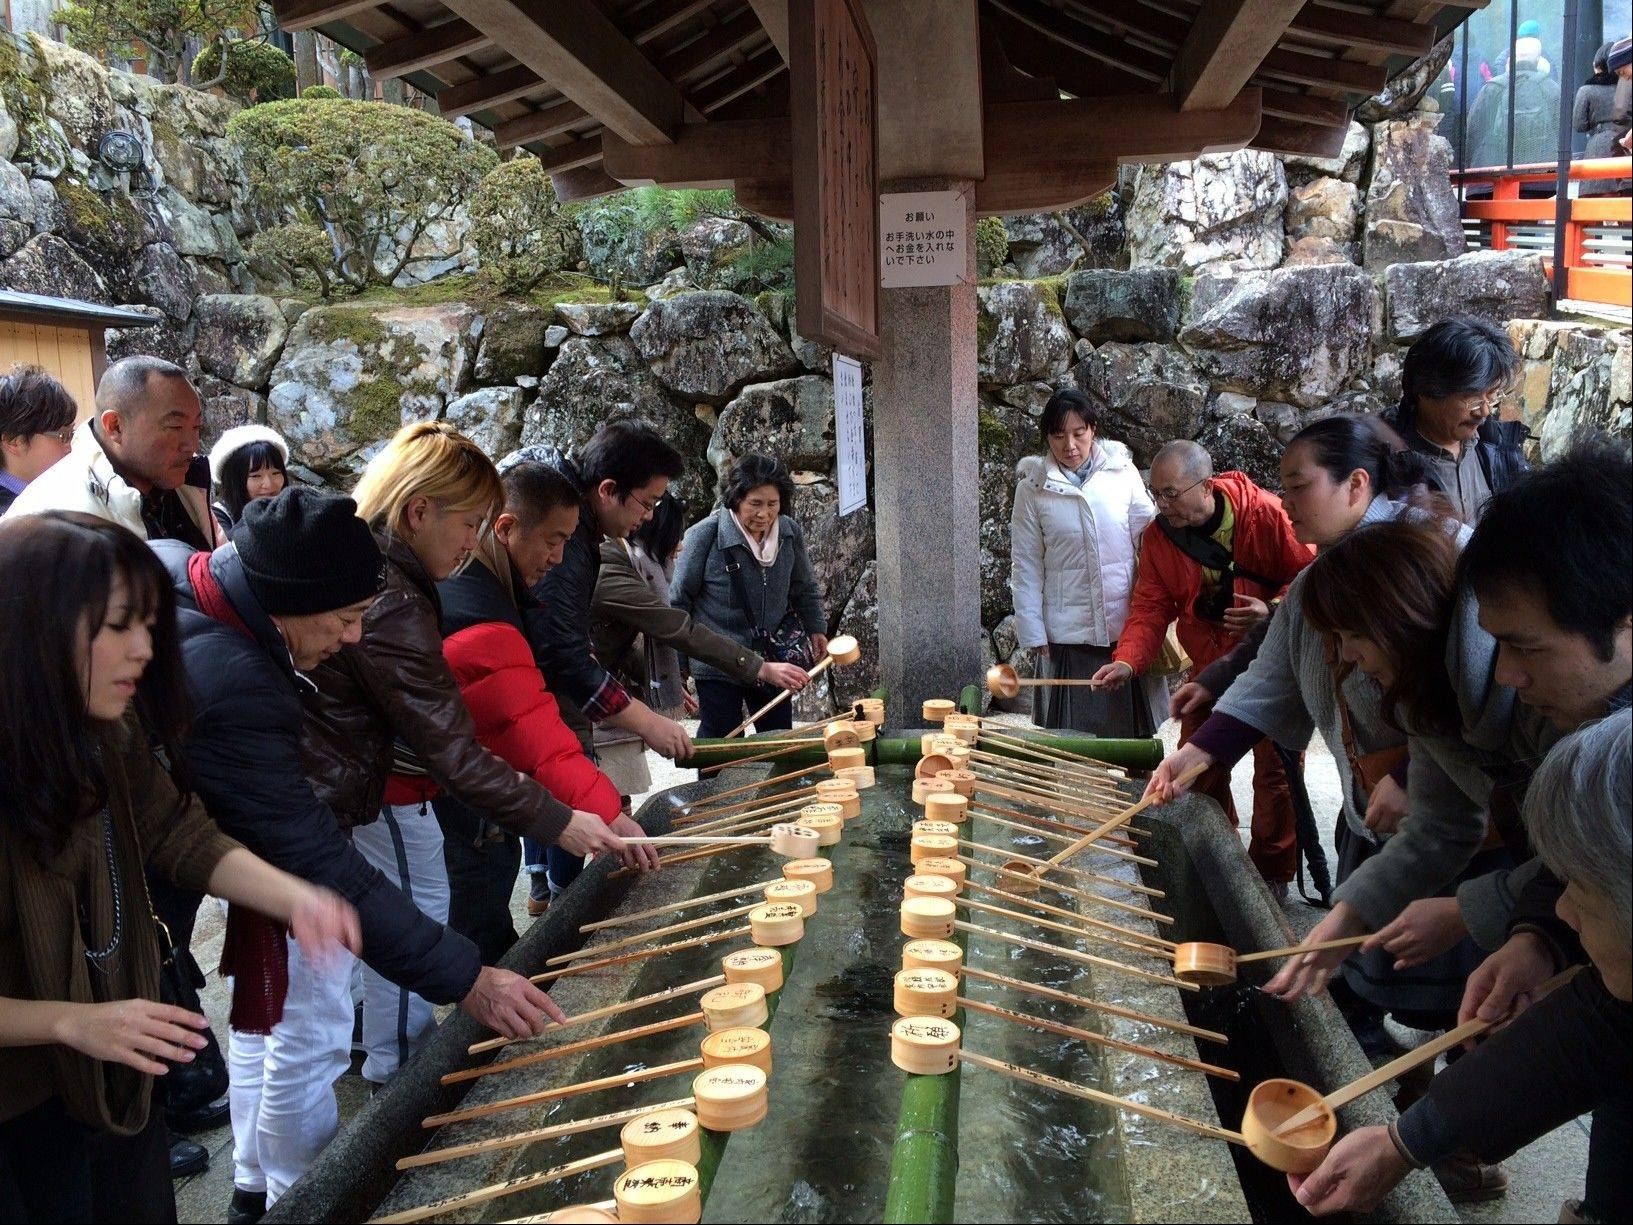 Visitors perform ablutions during a pilgrimage to the Kiyoshikojin Seicho-ji temple complex on a wooded mountain just north of Osaka, Japan. About 3.5 million people visit the complex annually, more than 700,000 of them during the peak pilgrimage season from New Year's to early February.